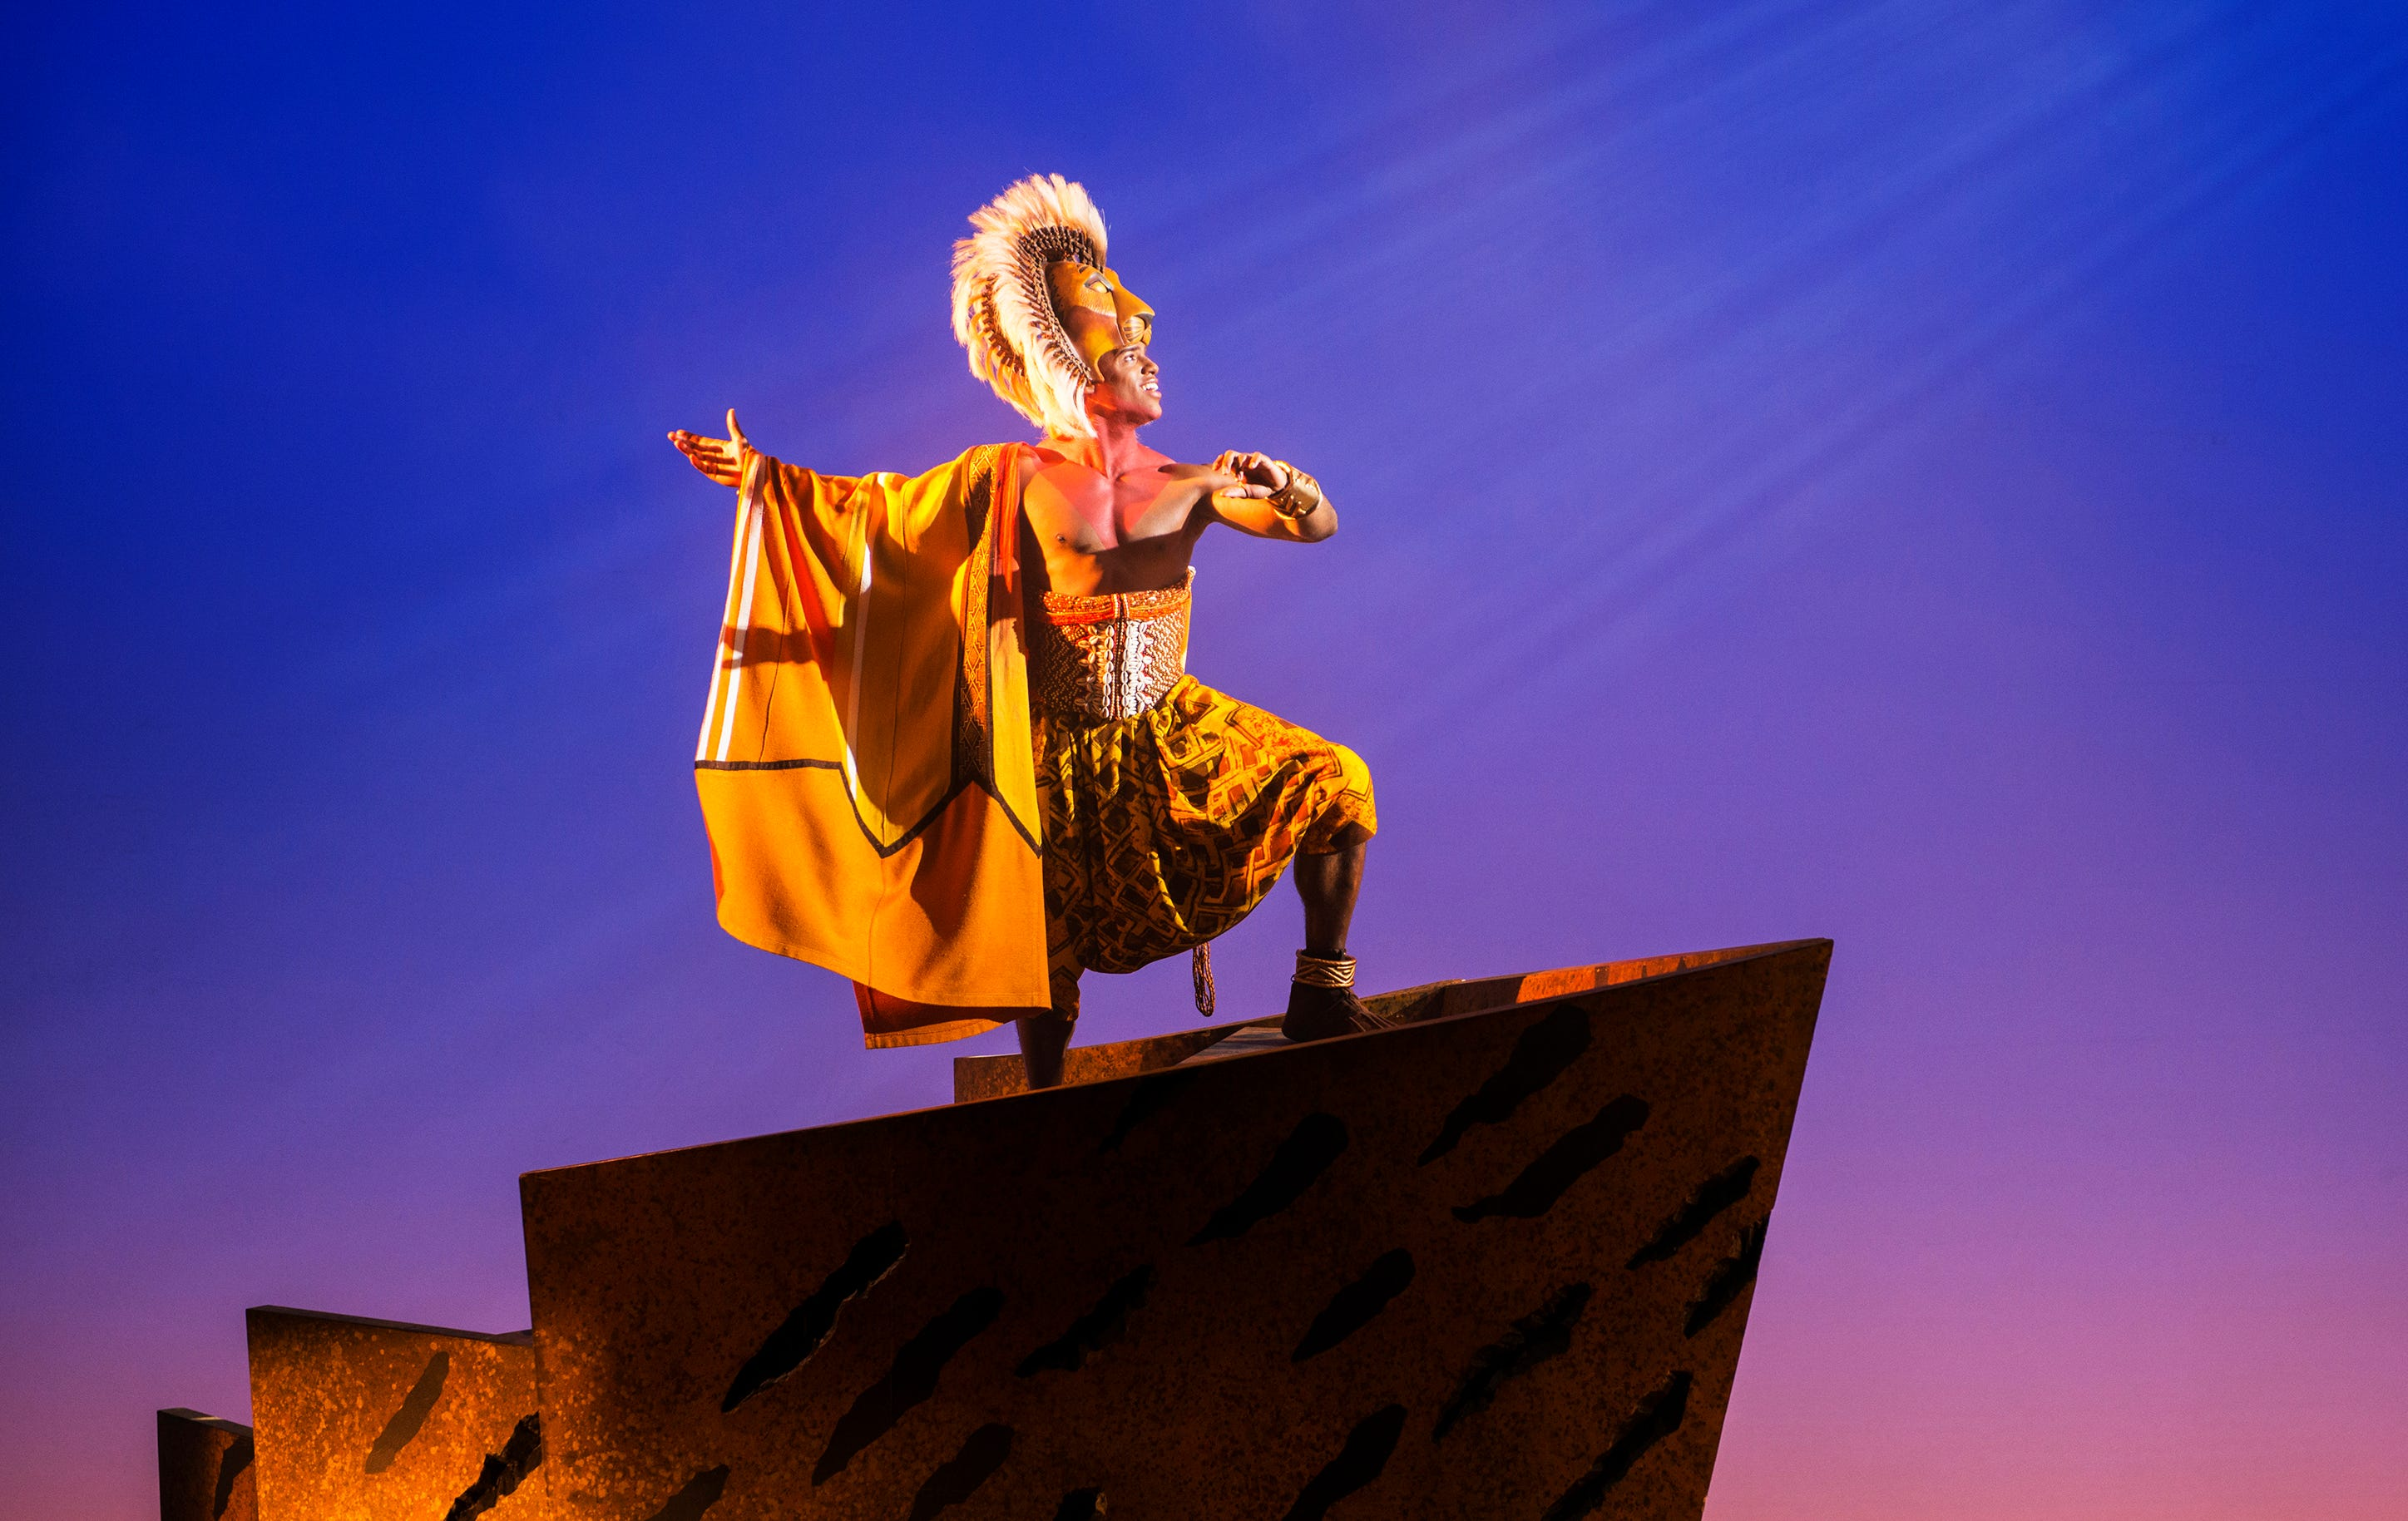 Review The Lion King At The Fox Cities Performing Arts Center In Appleton